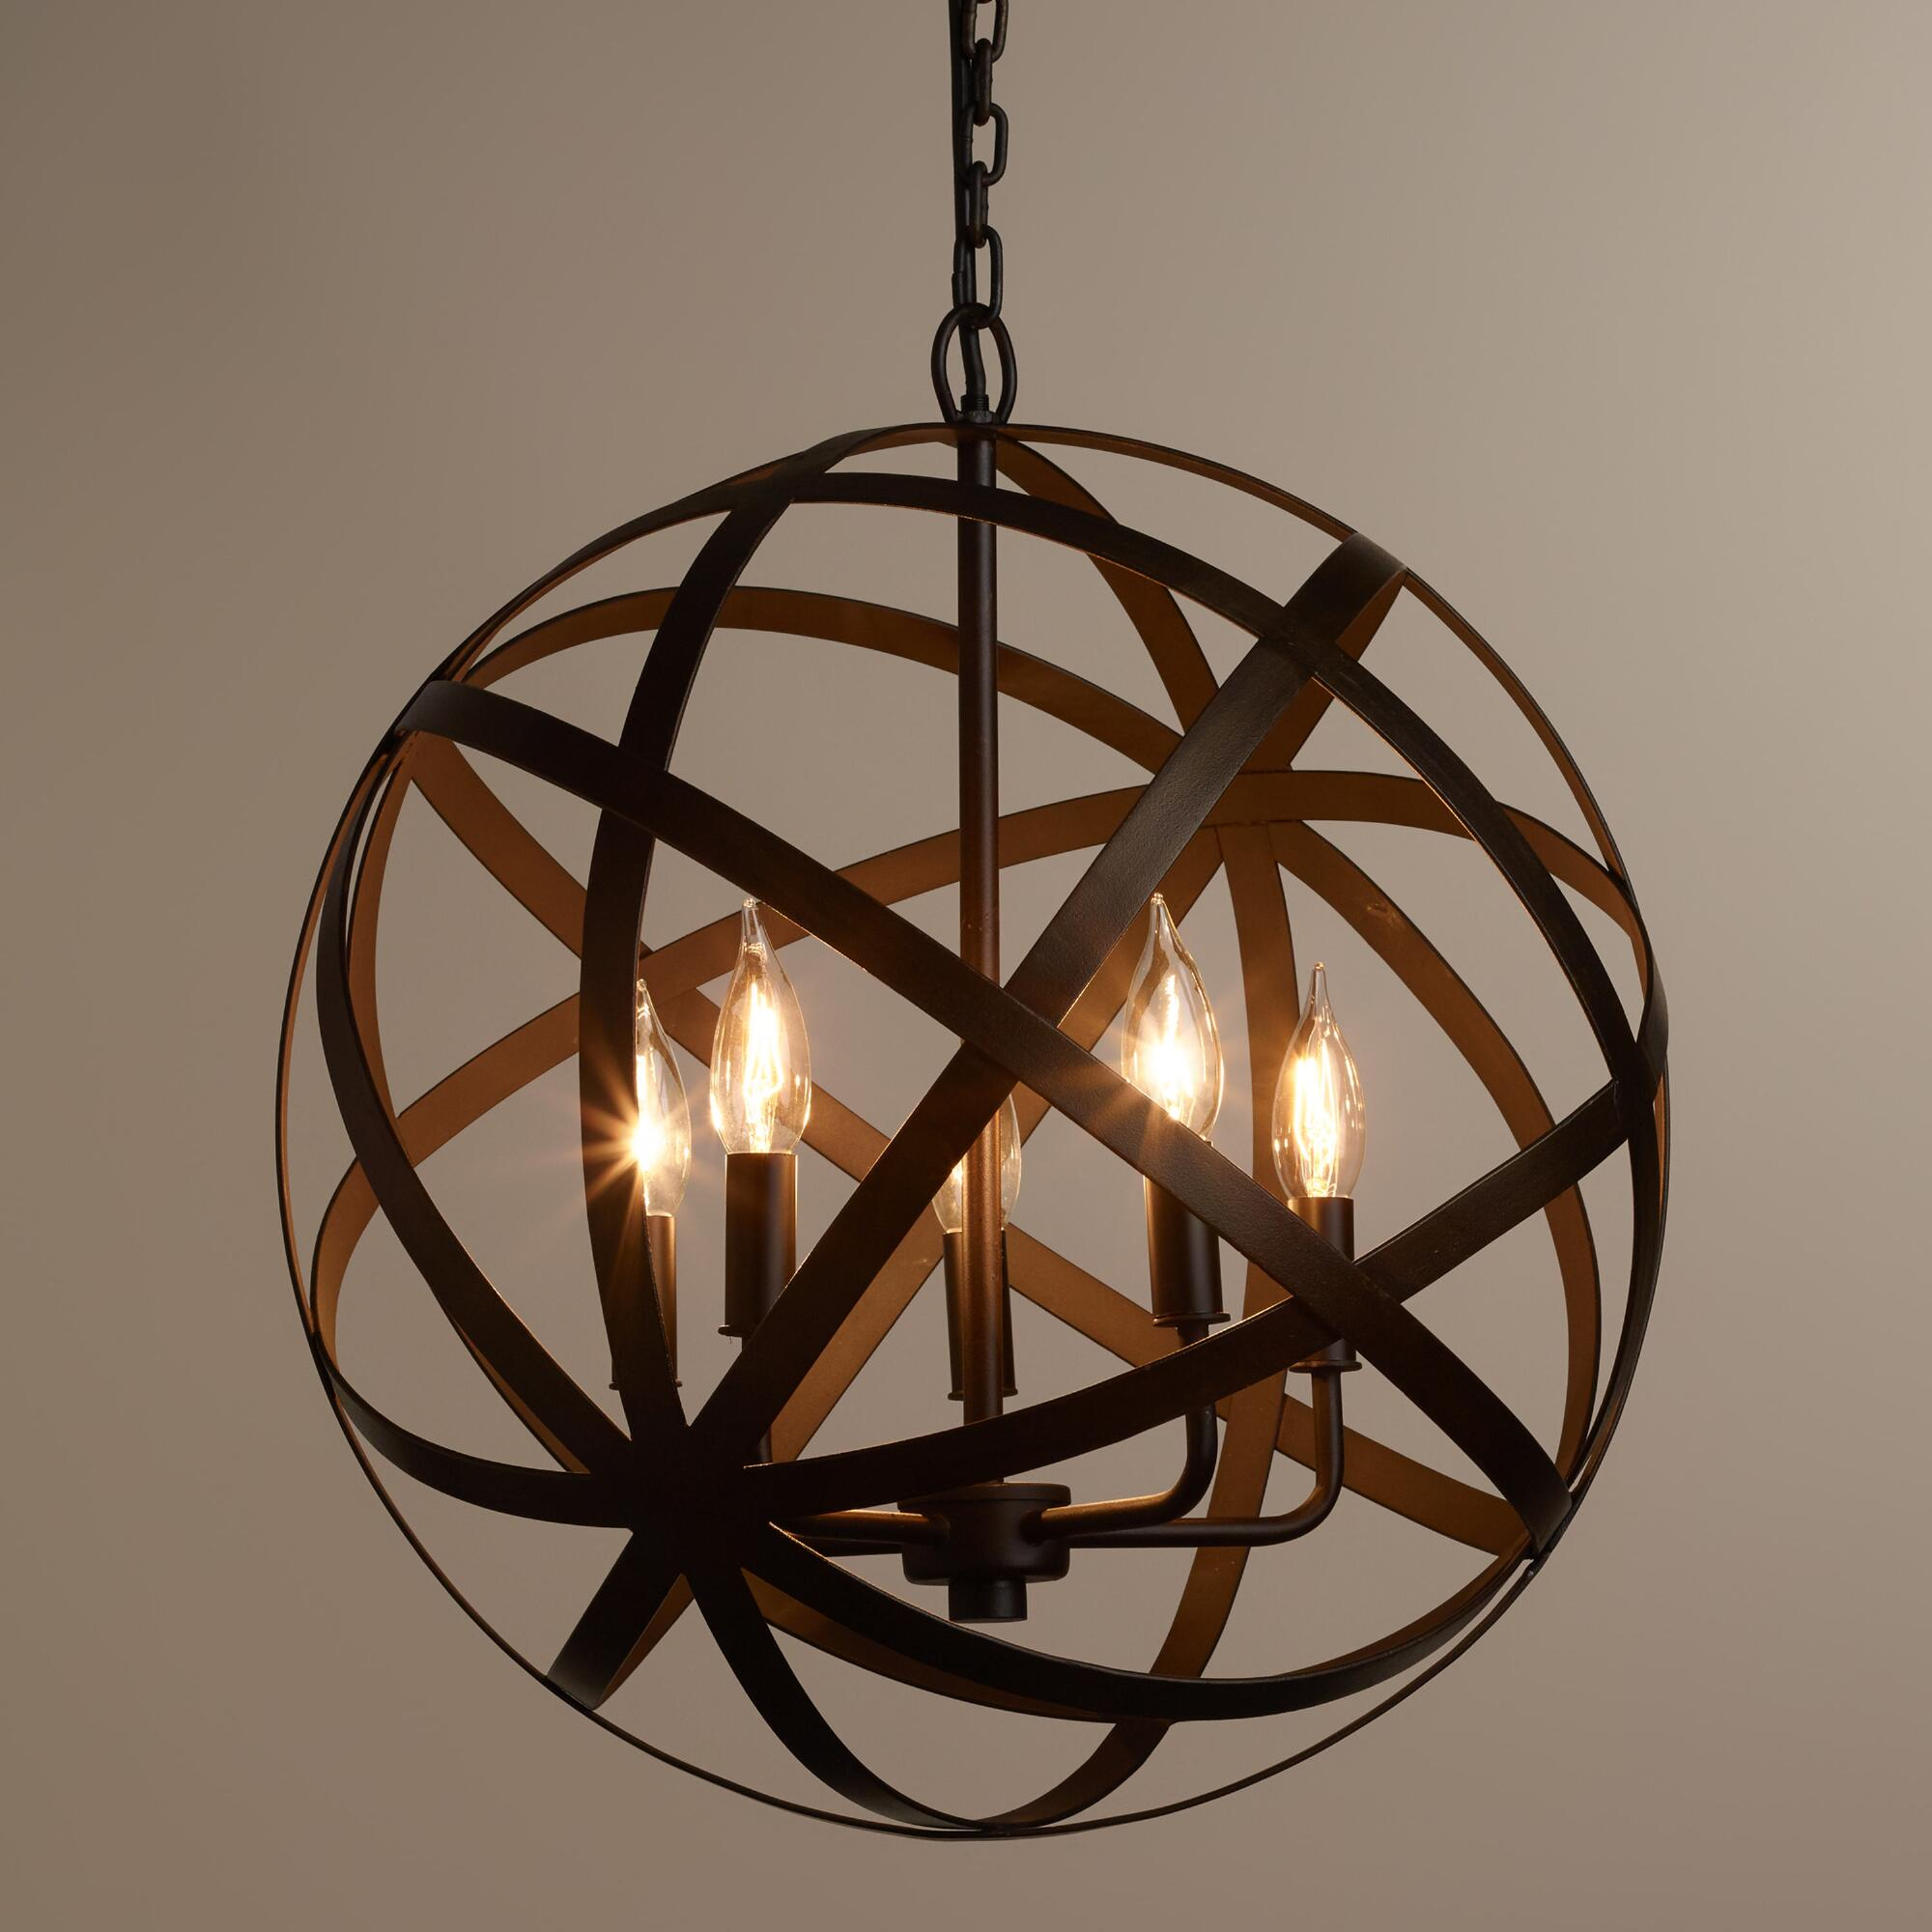 Admirable sphere chandelier metal orb chandelier with interesting Cheap Price for your Home Lighting